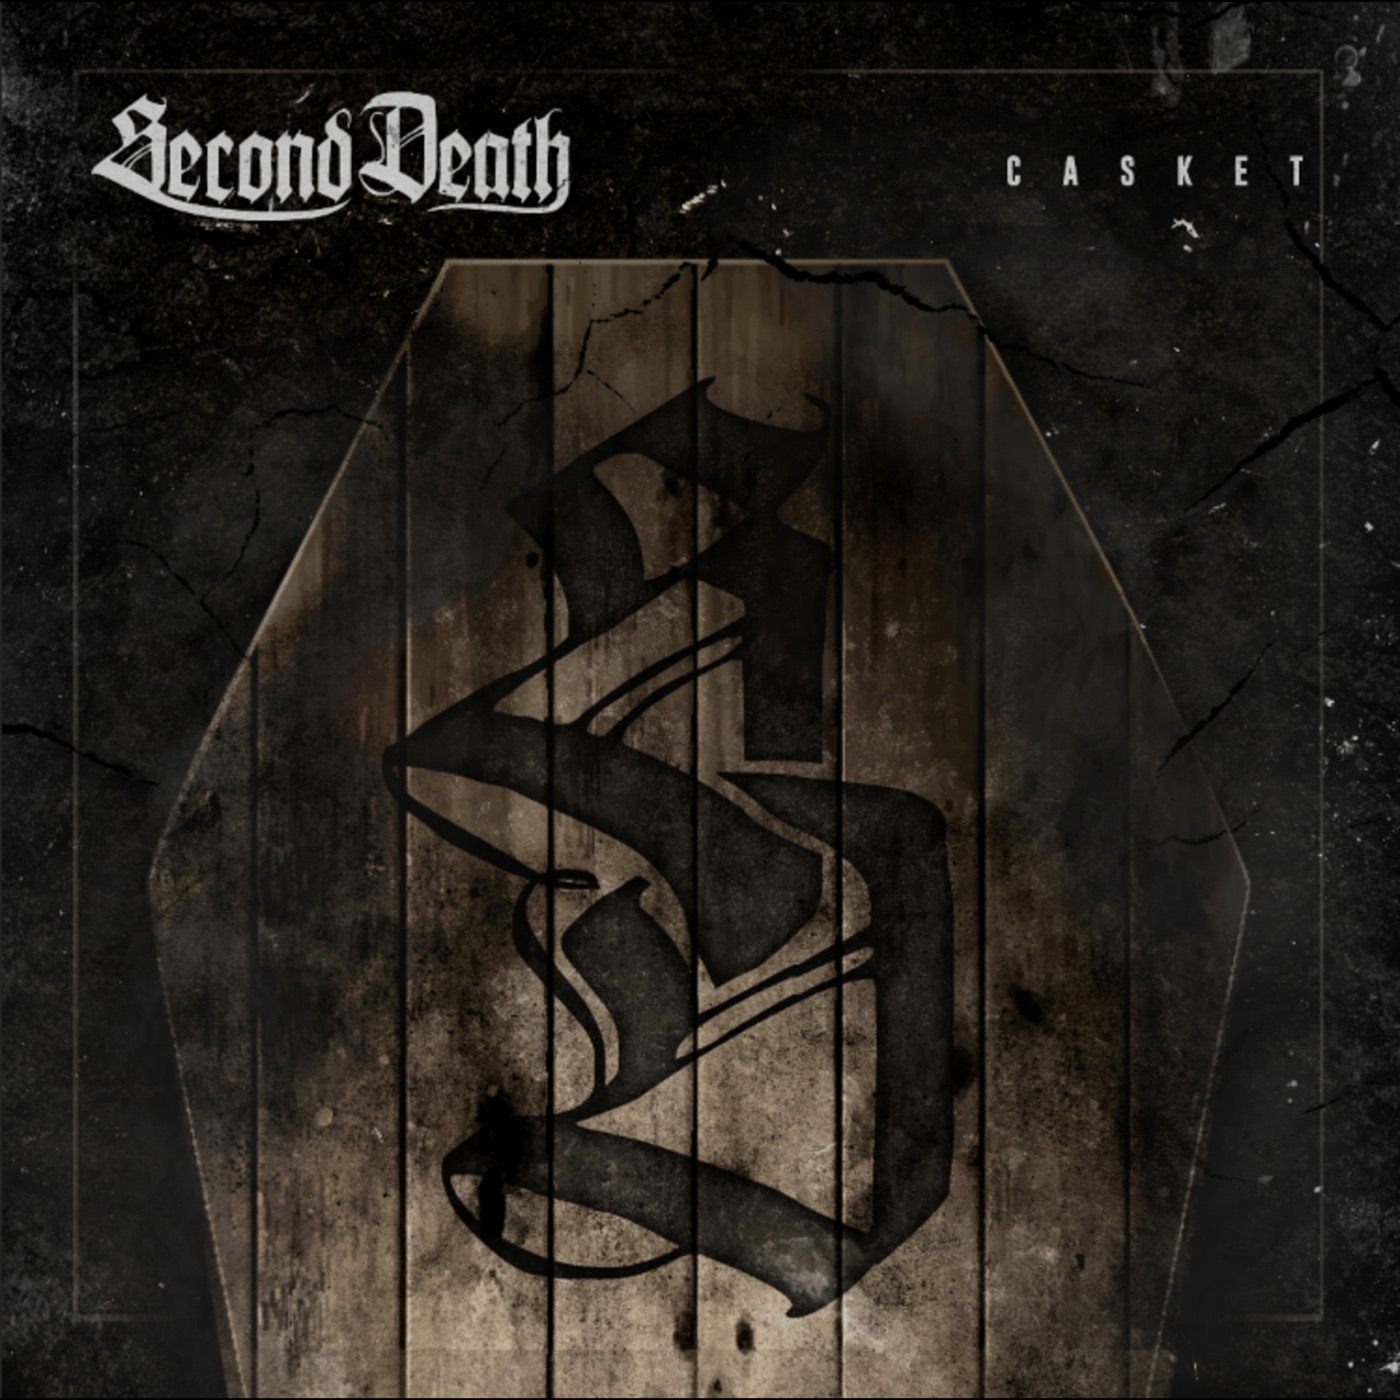 Second Death - Casket [EP] (2017)